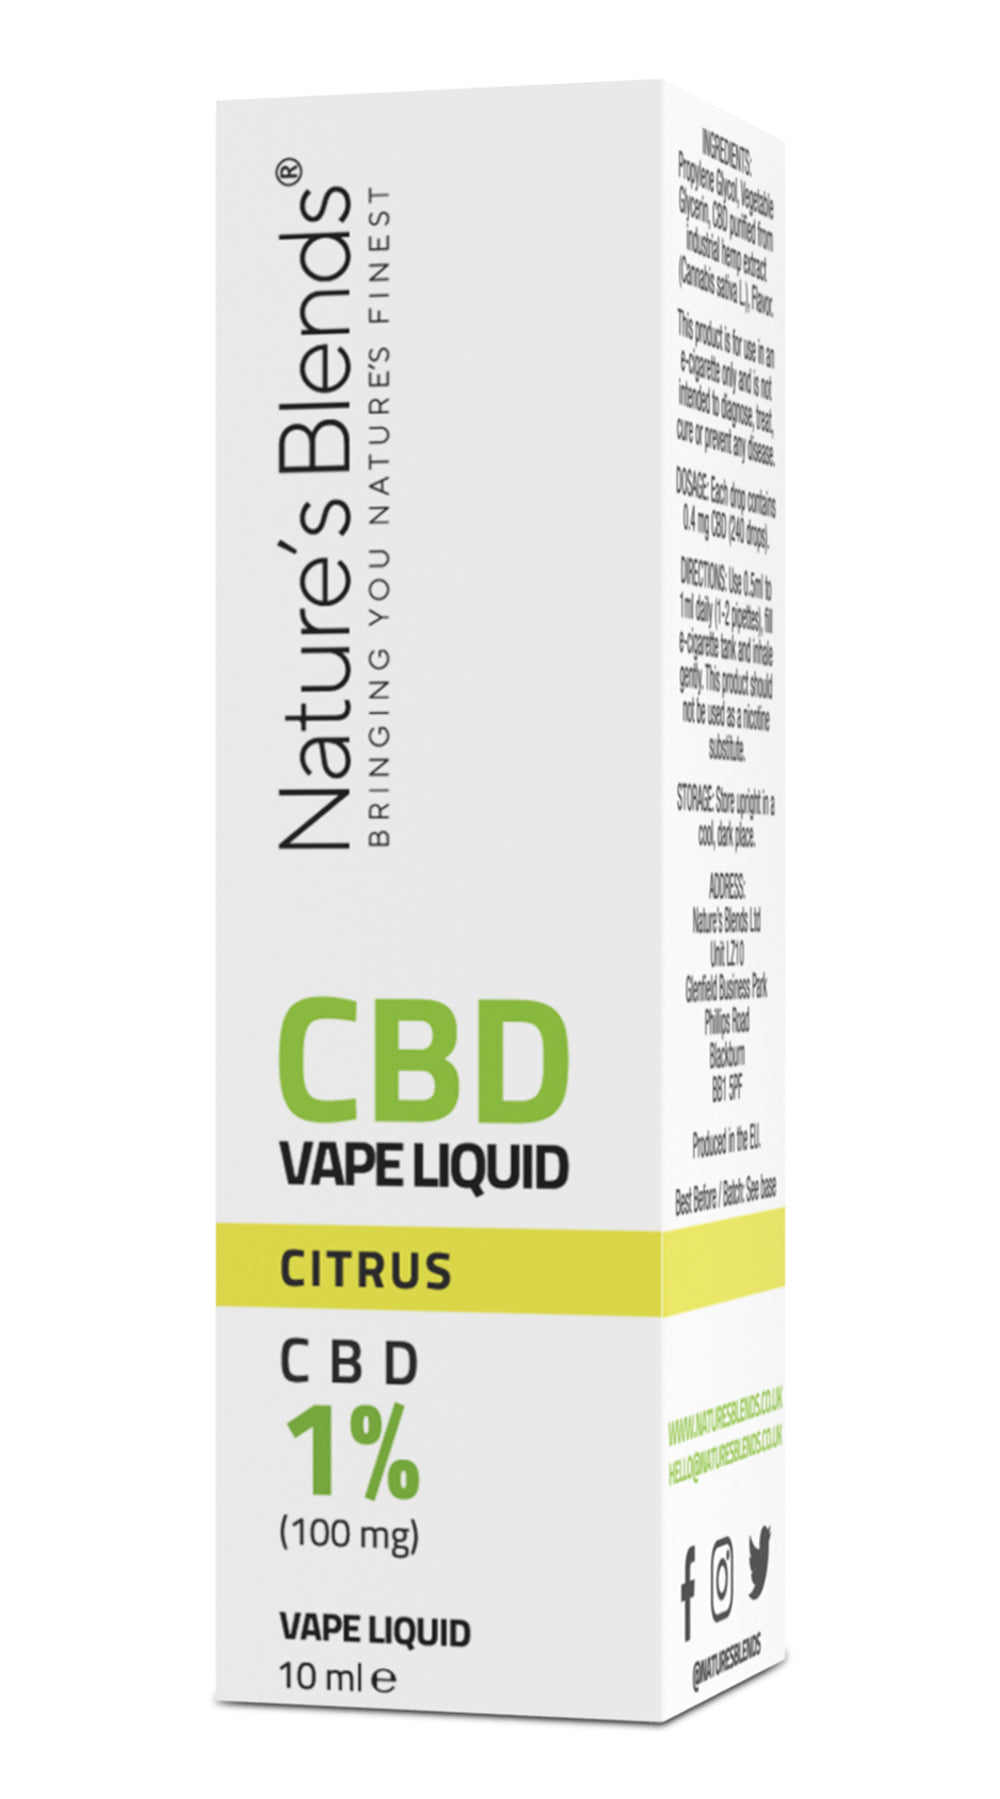 A citrus flavour 100mg cbd vape packaging by natures blends